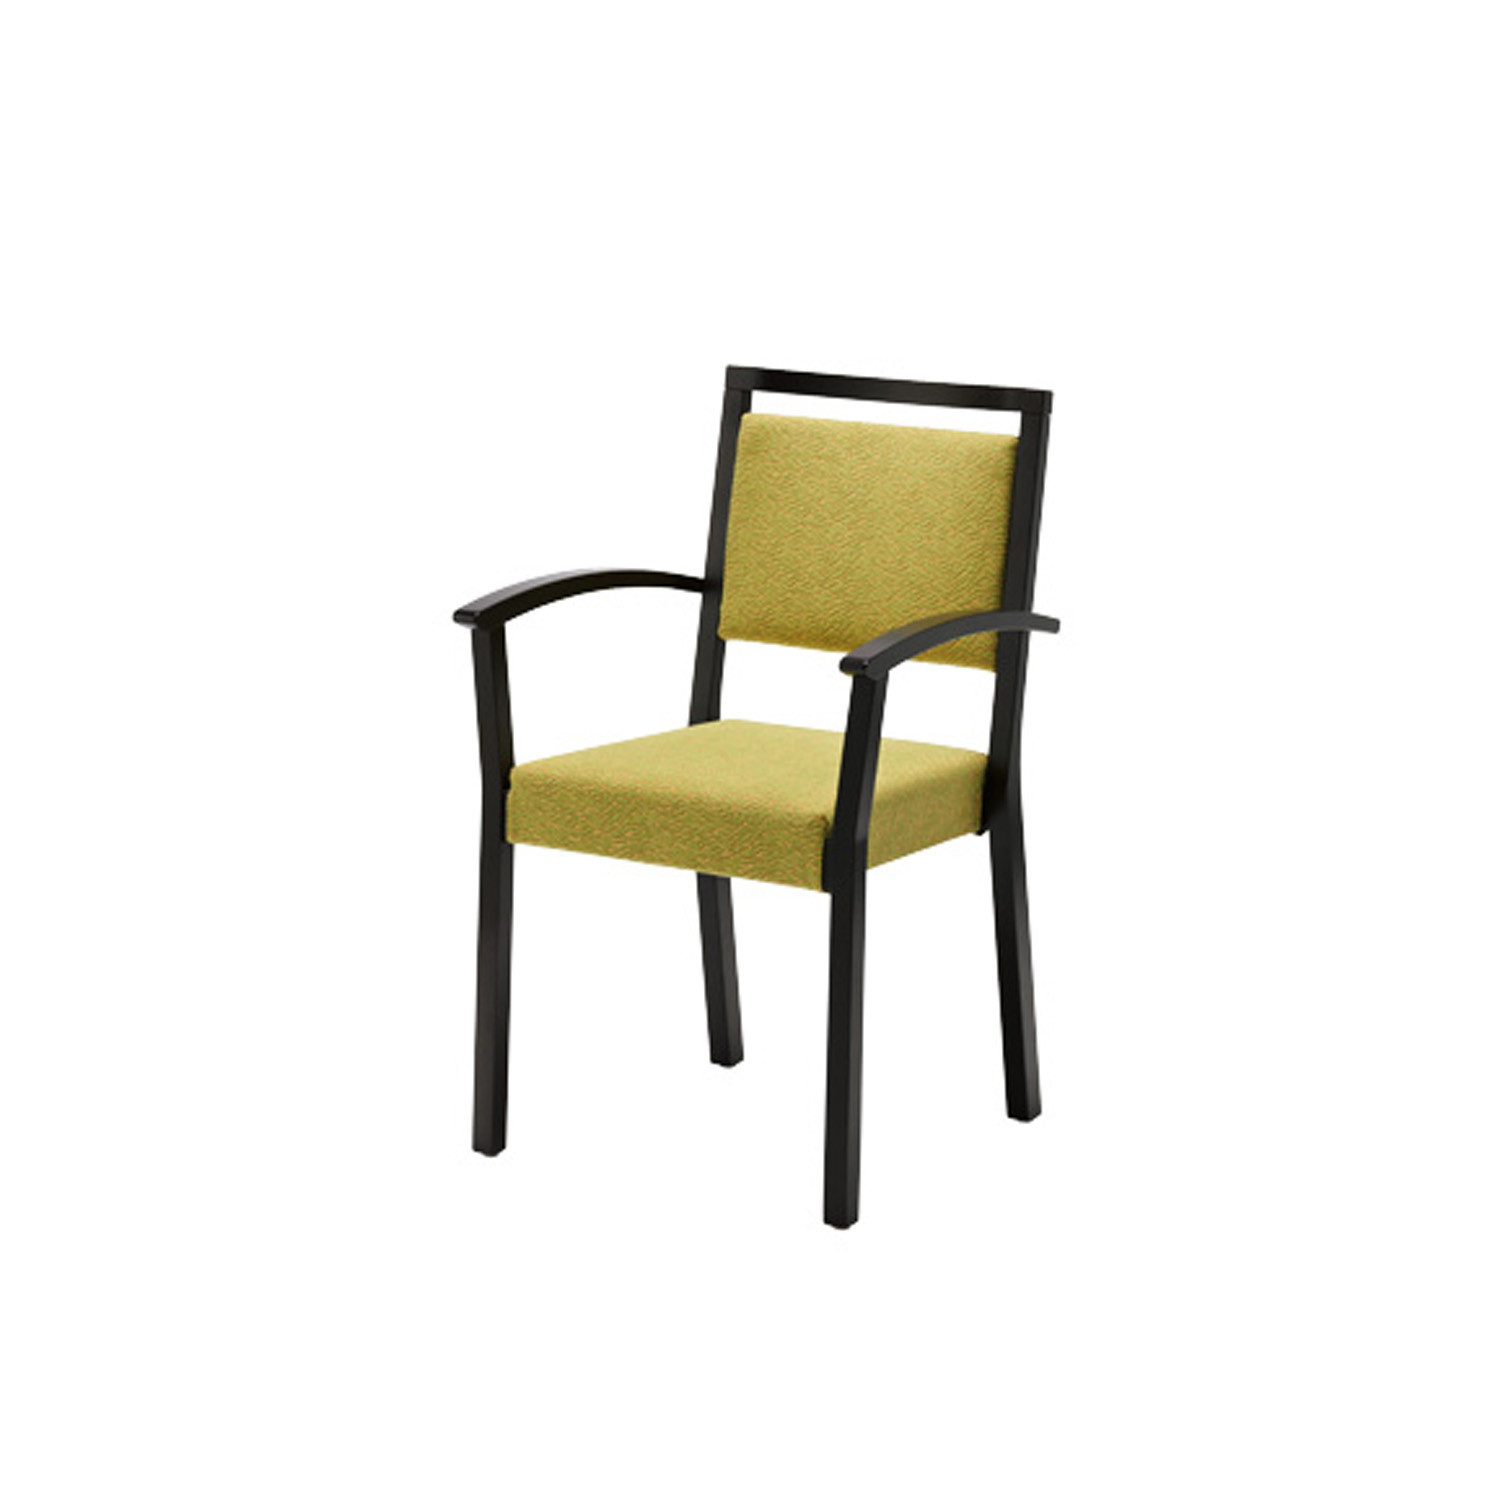 S13 Armchair Upholstered 6715-103